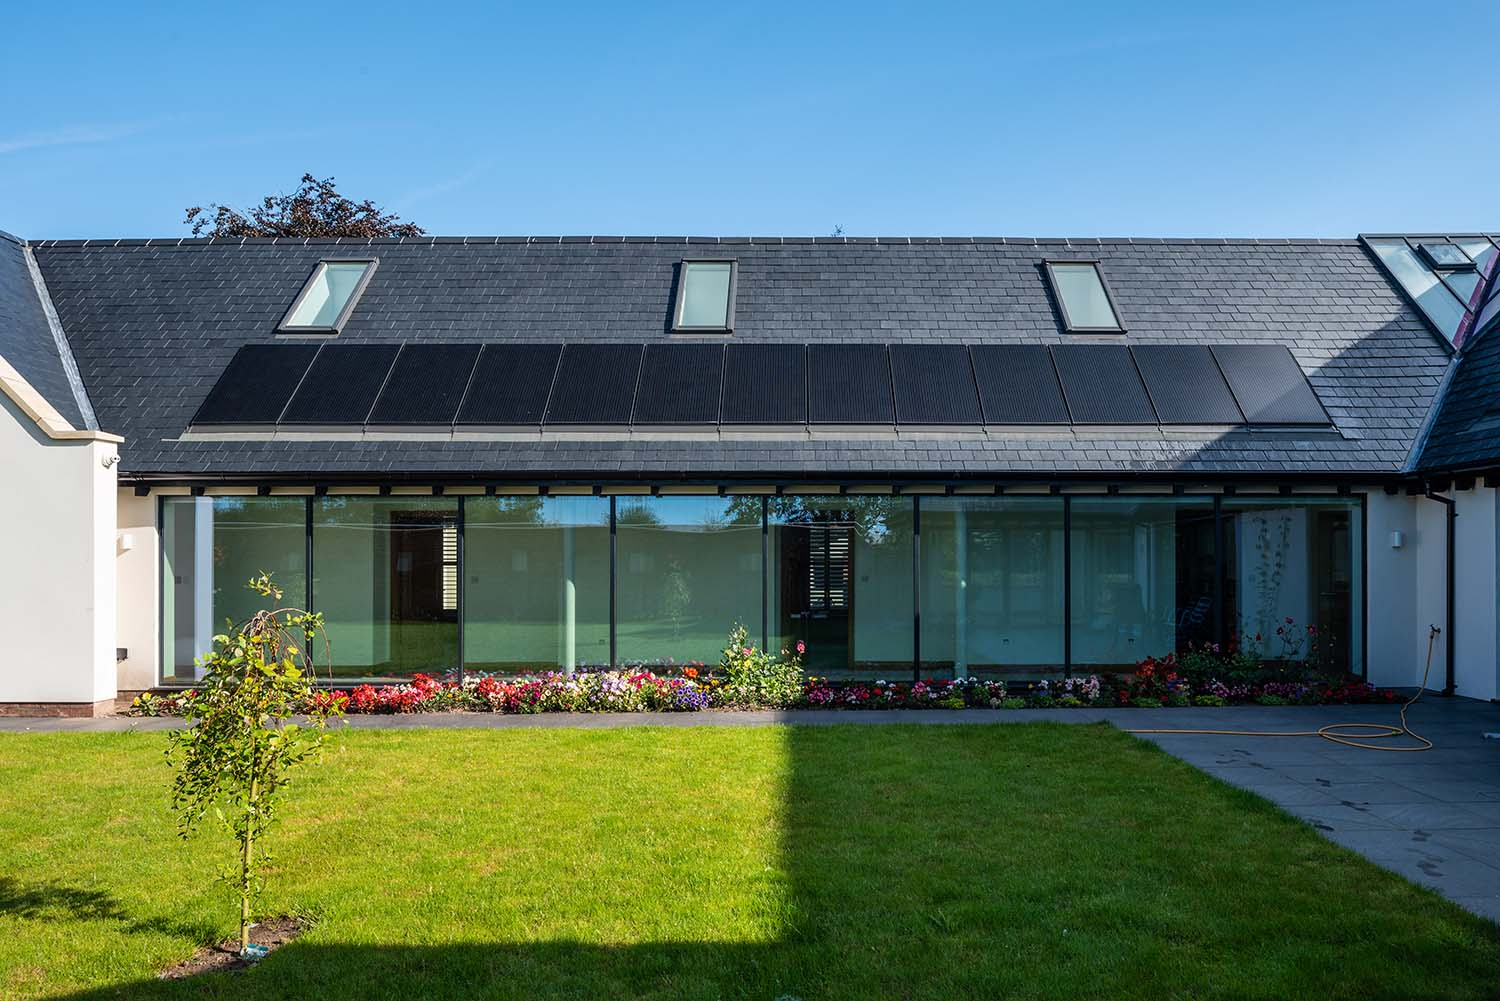 CUPA 2 natural slate completes Smithy Cottage